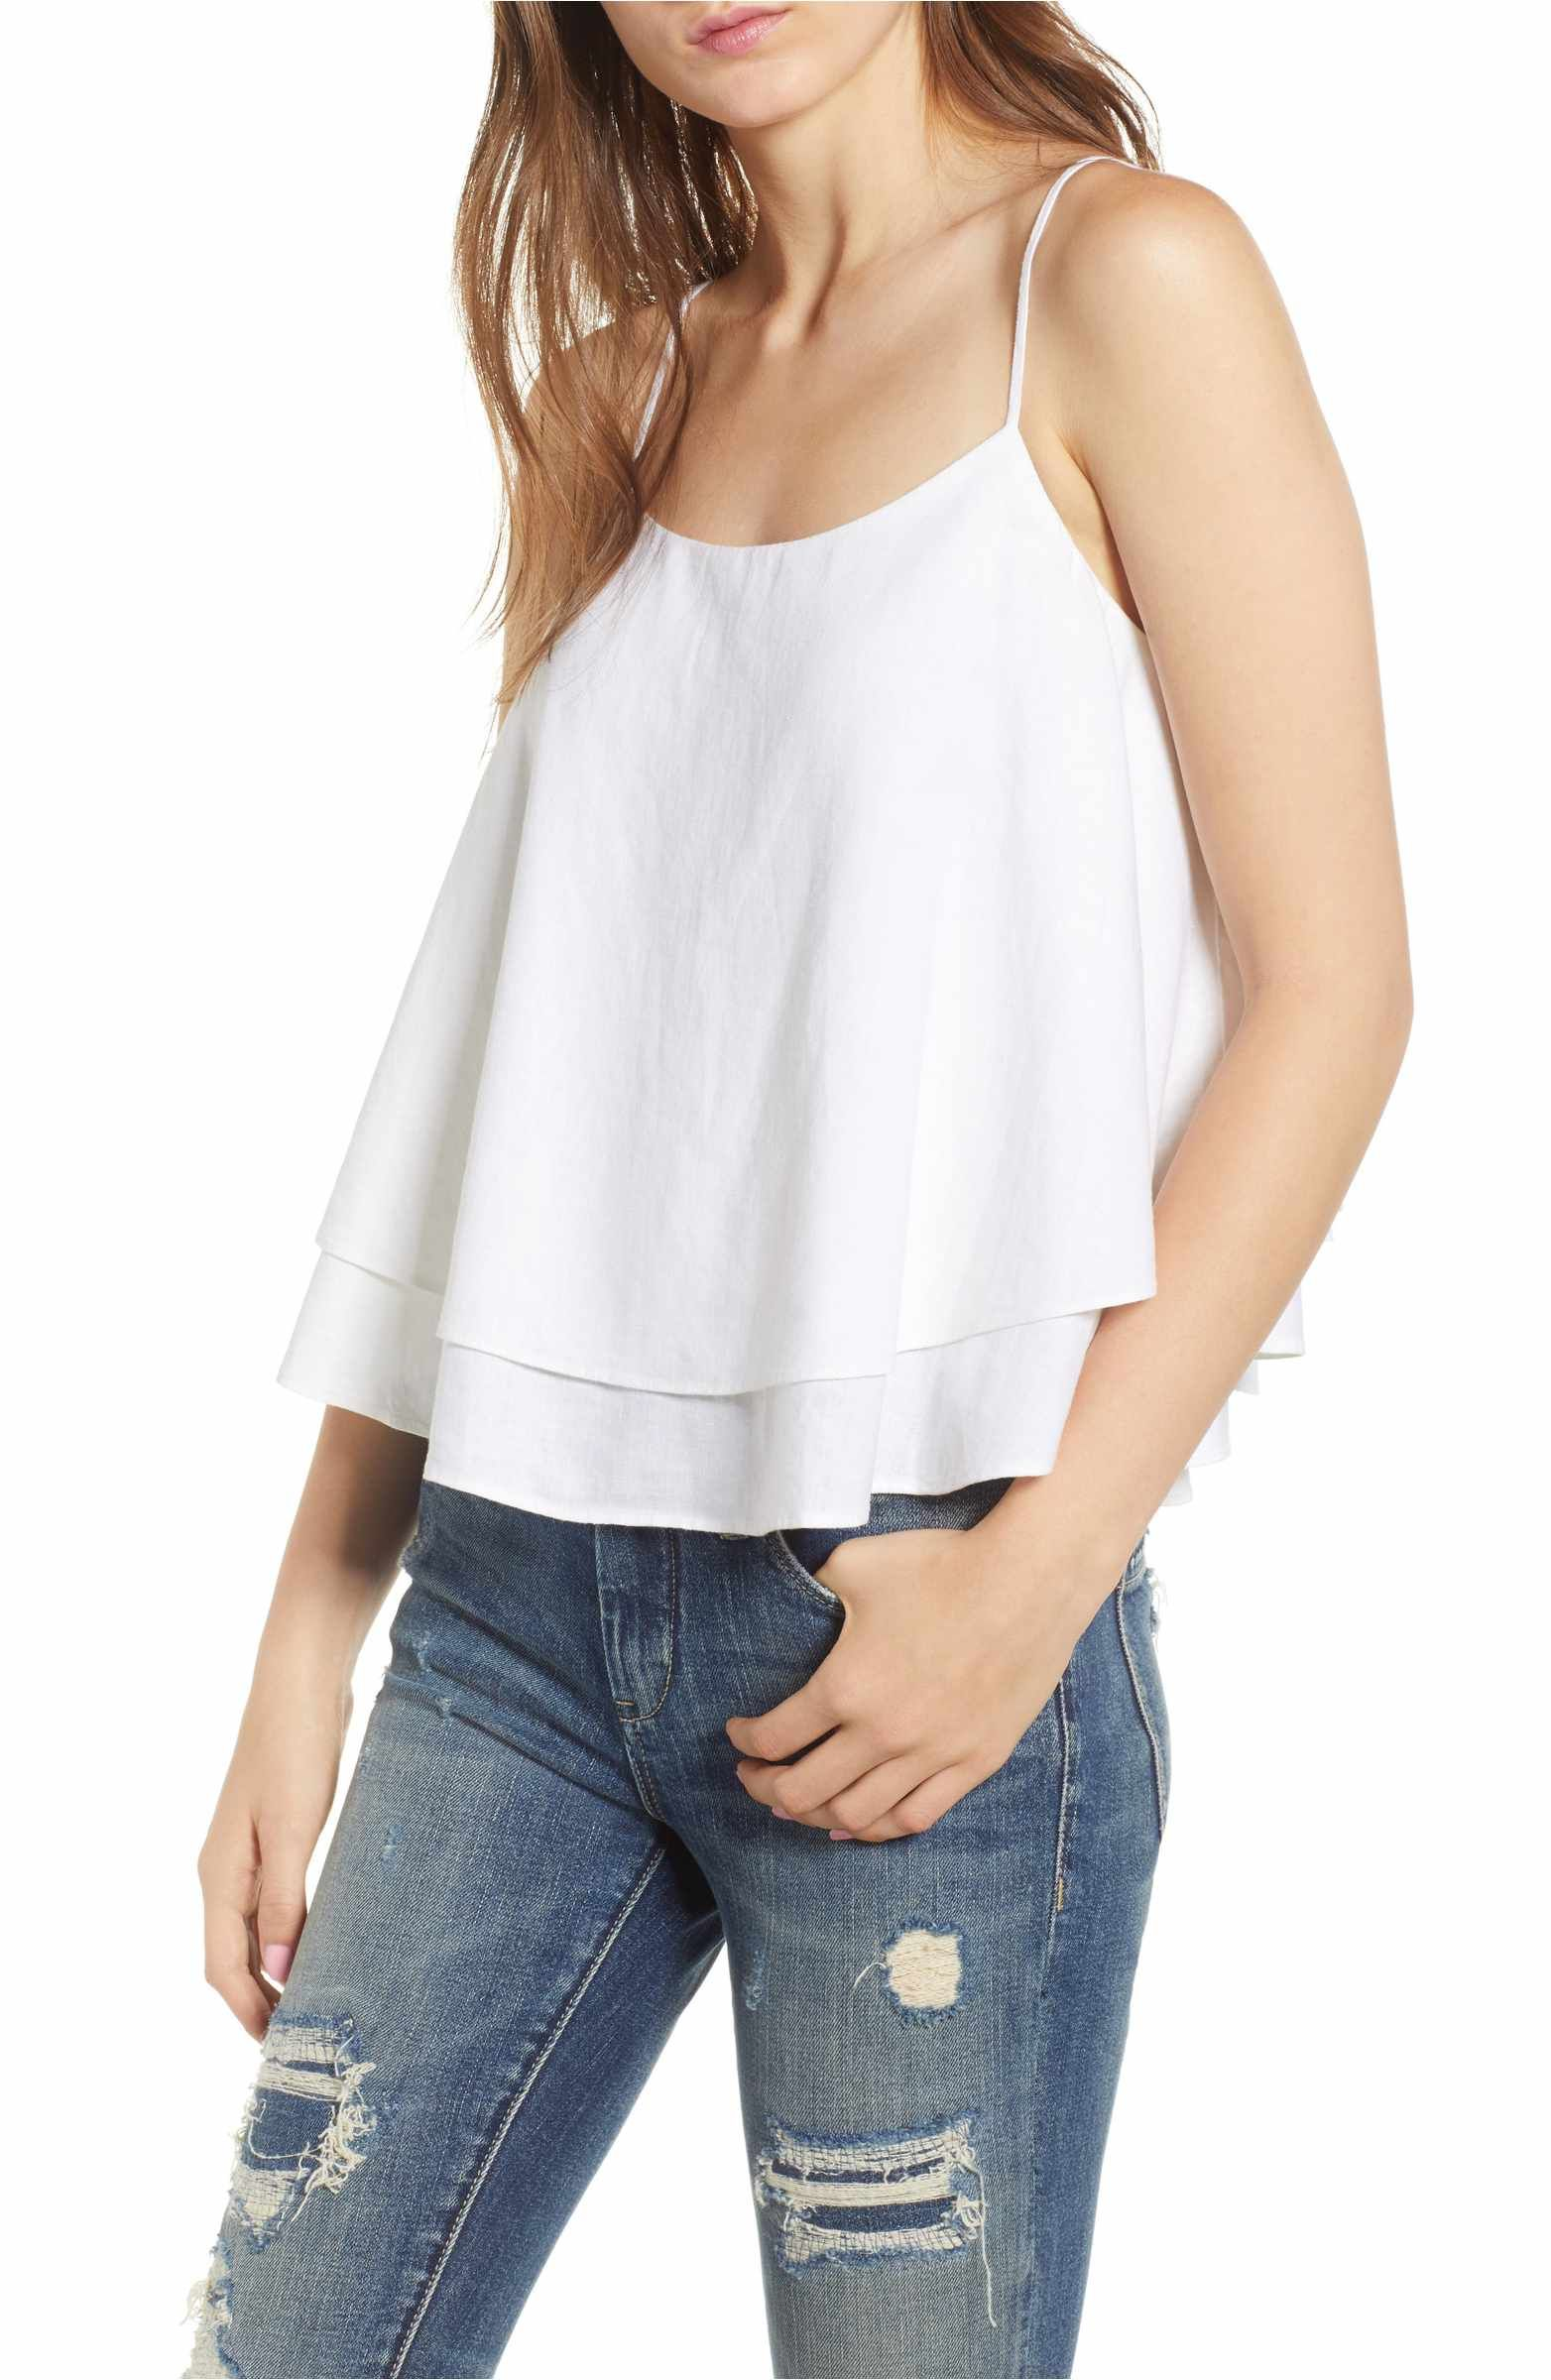 b226aa51e Main Image - BP. Tiered Linen Blend Camisole | Wantable, Stitch Fix ...